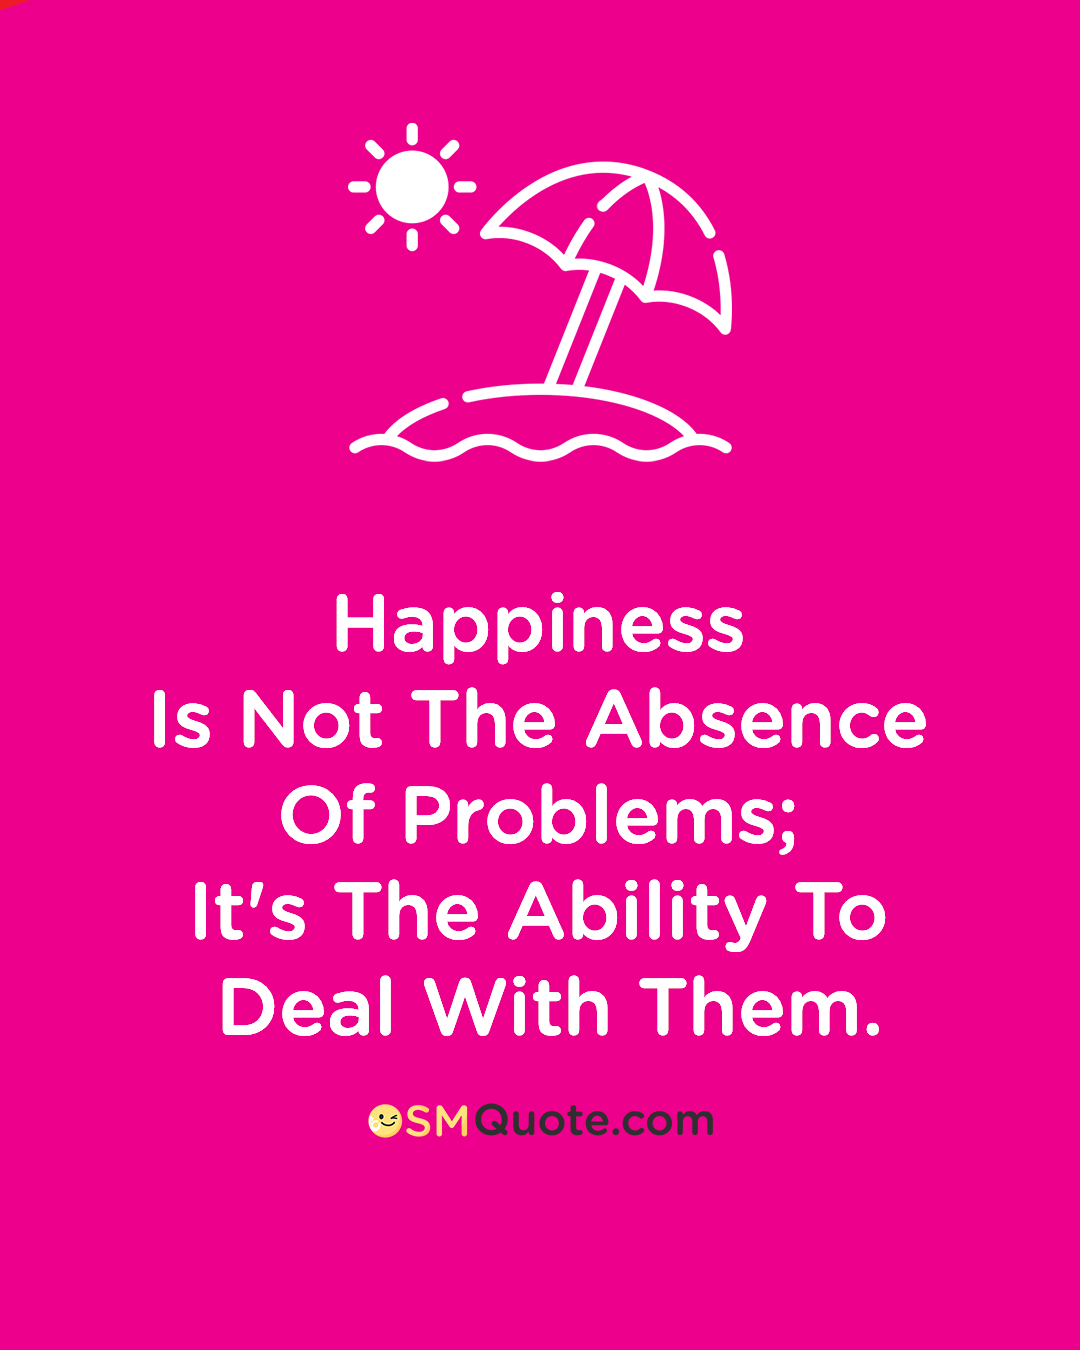 Happiness is not the absence of problems; it's the ability to deal with them. – Steve Maraboli [1080px X 1350px]